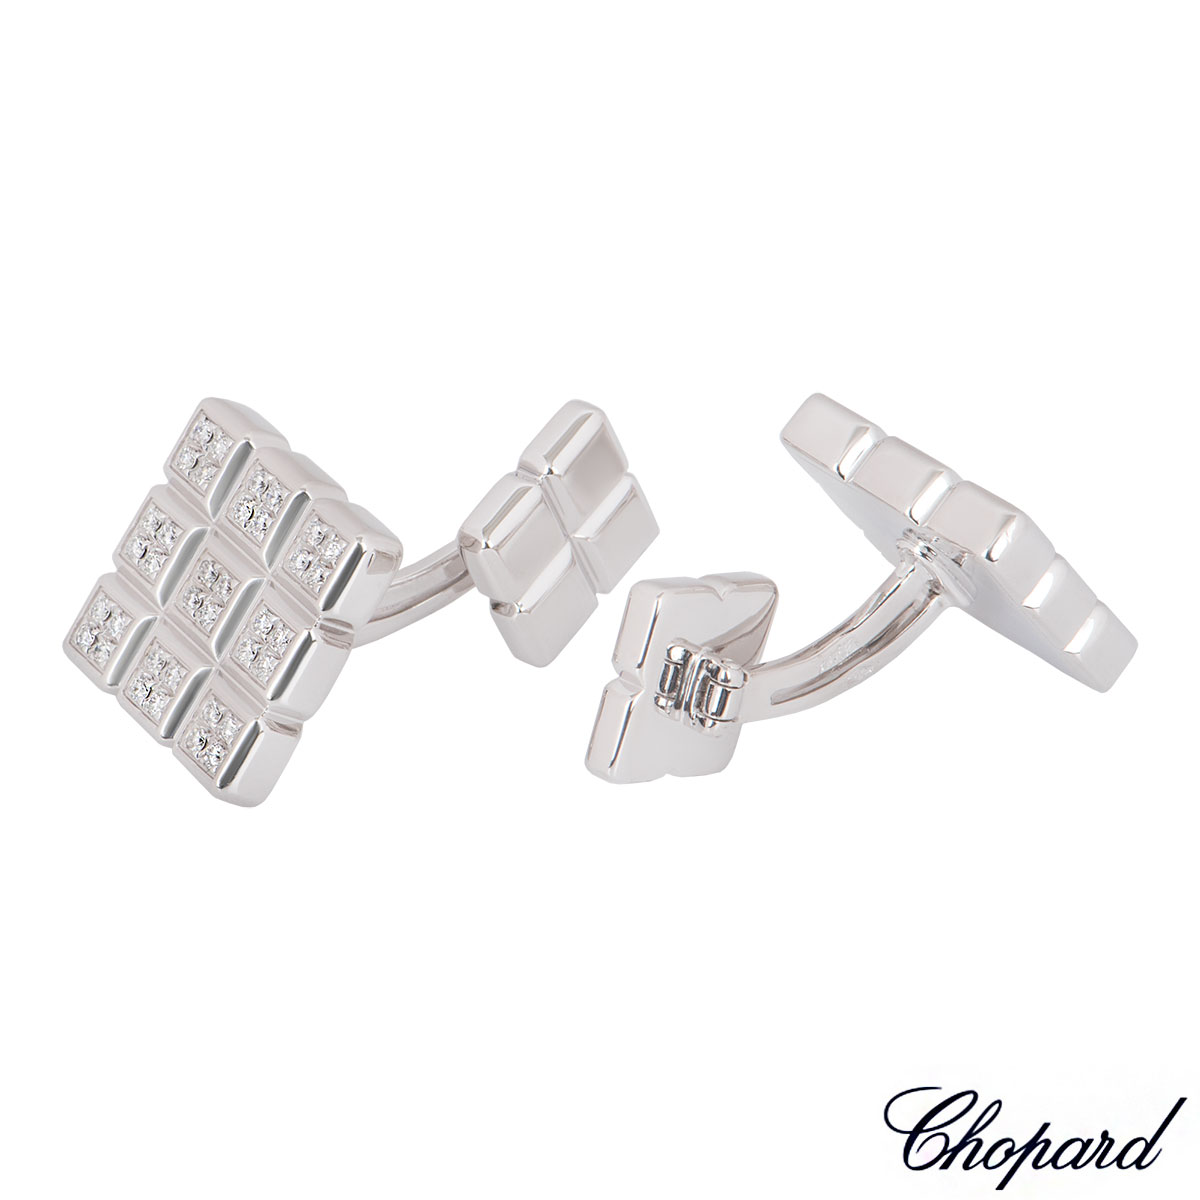 Chopard White Gold Diamond Ice Cube Cufflinks 75/4099/0